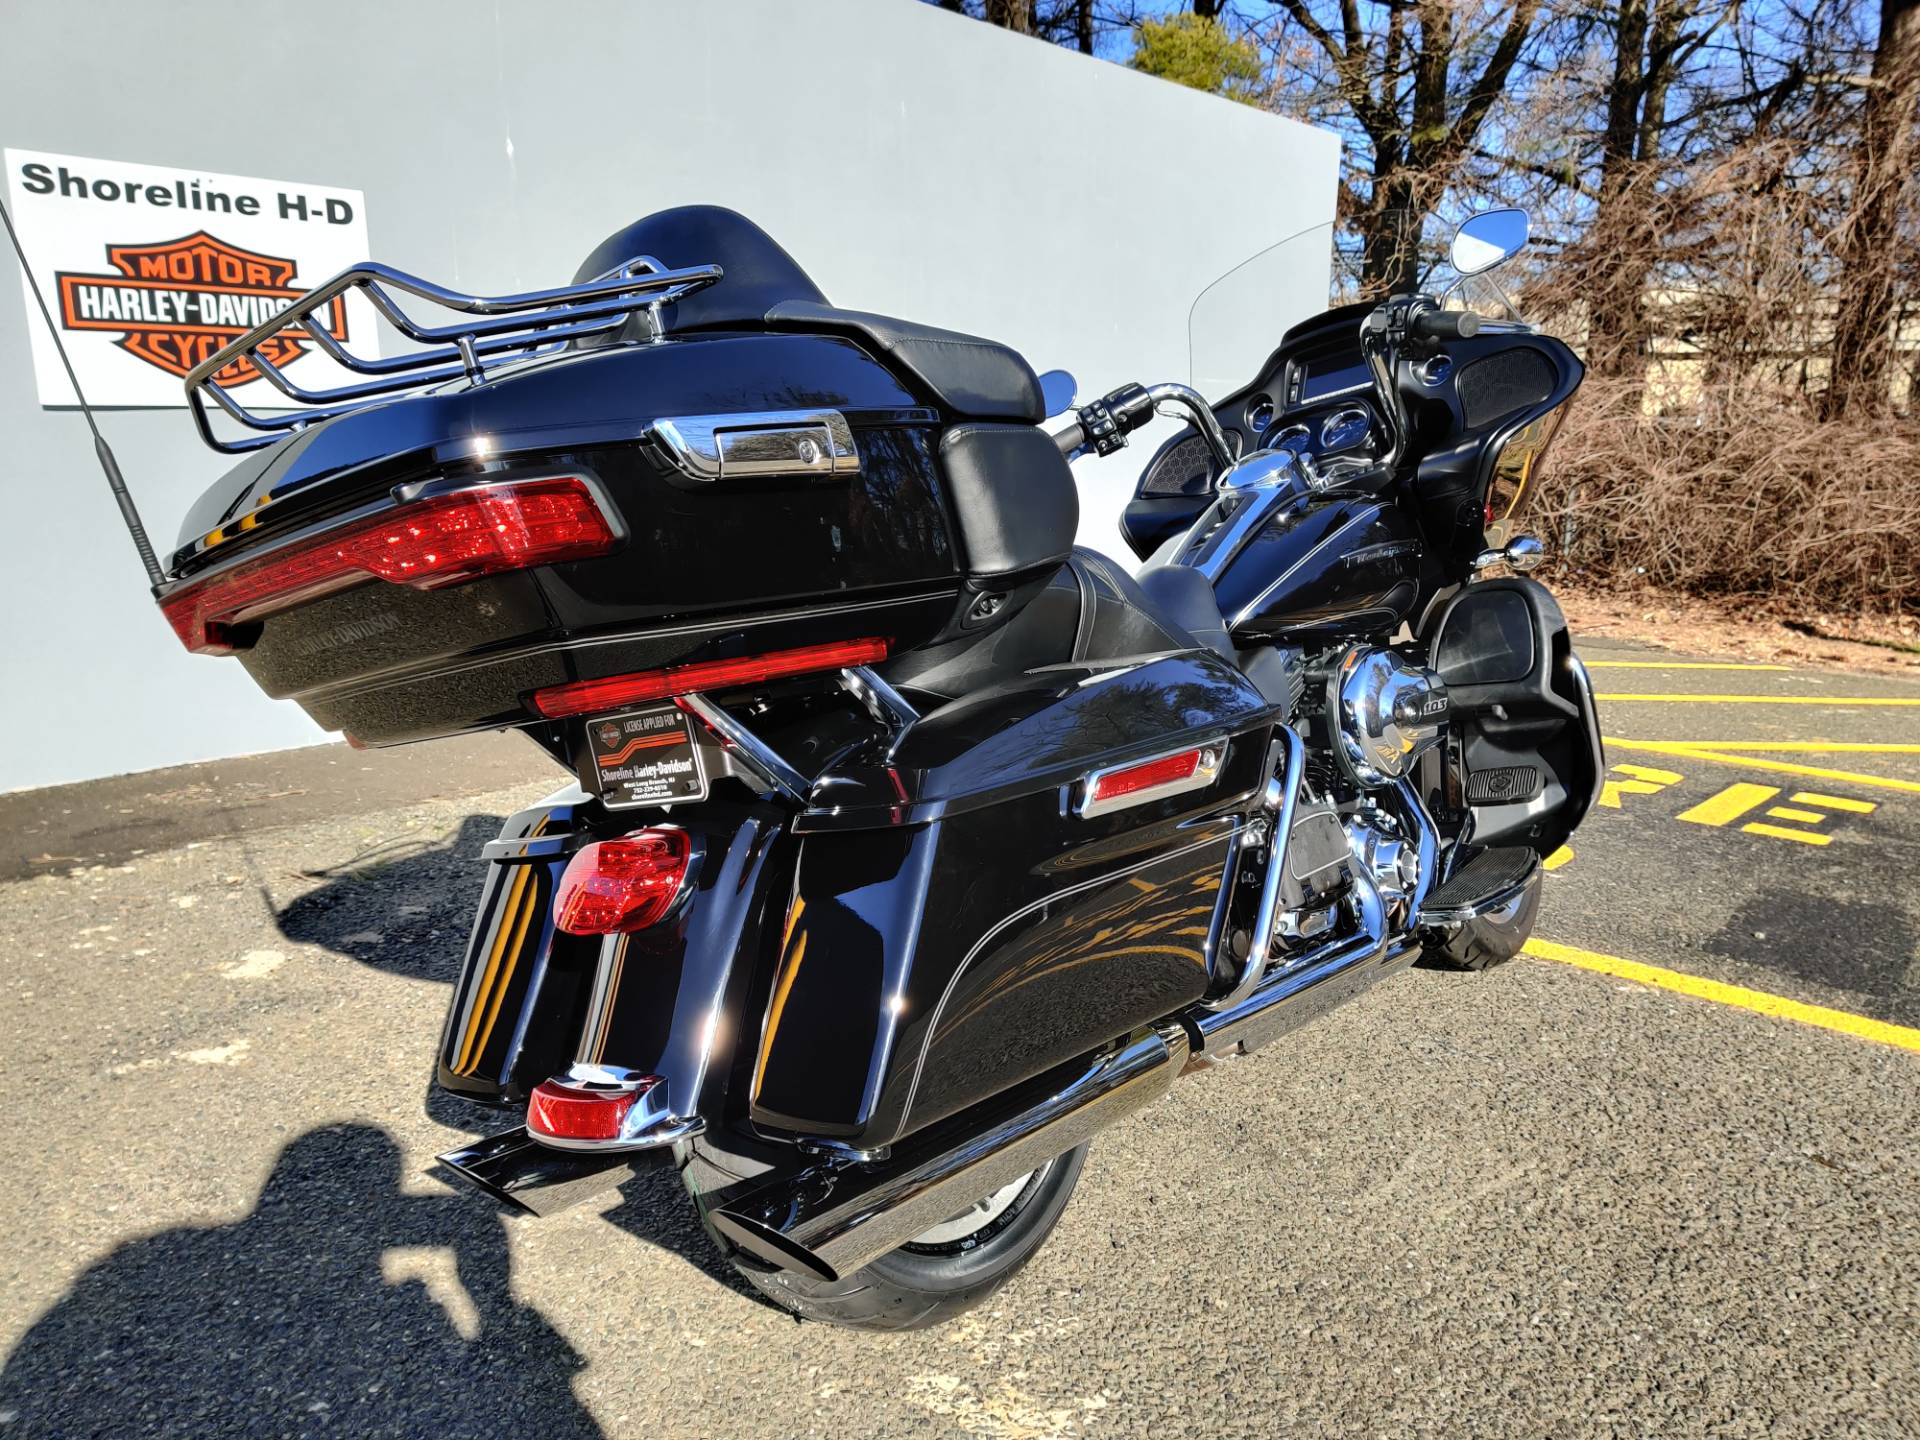 2016 Harley-Davidson Road Glide Ultra in West Long Branch, New Jersey - Photo 8